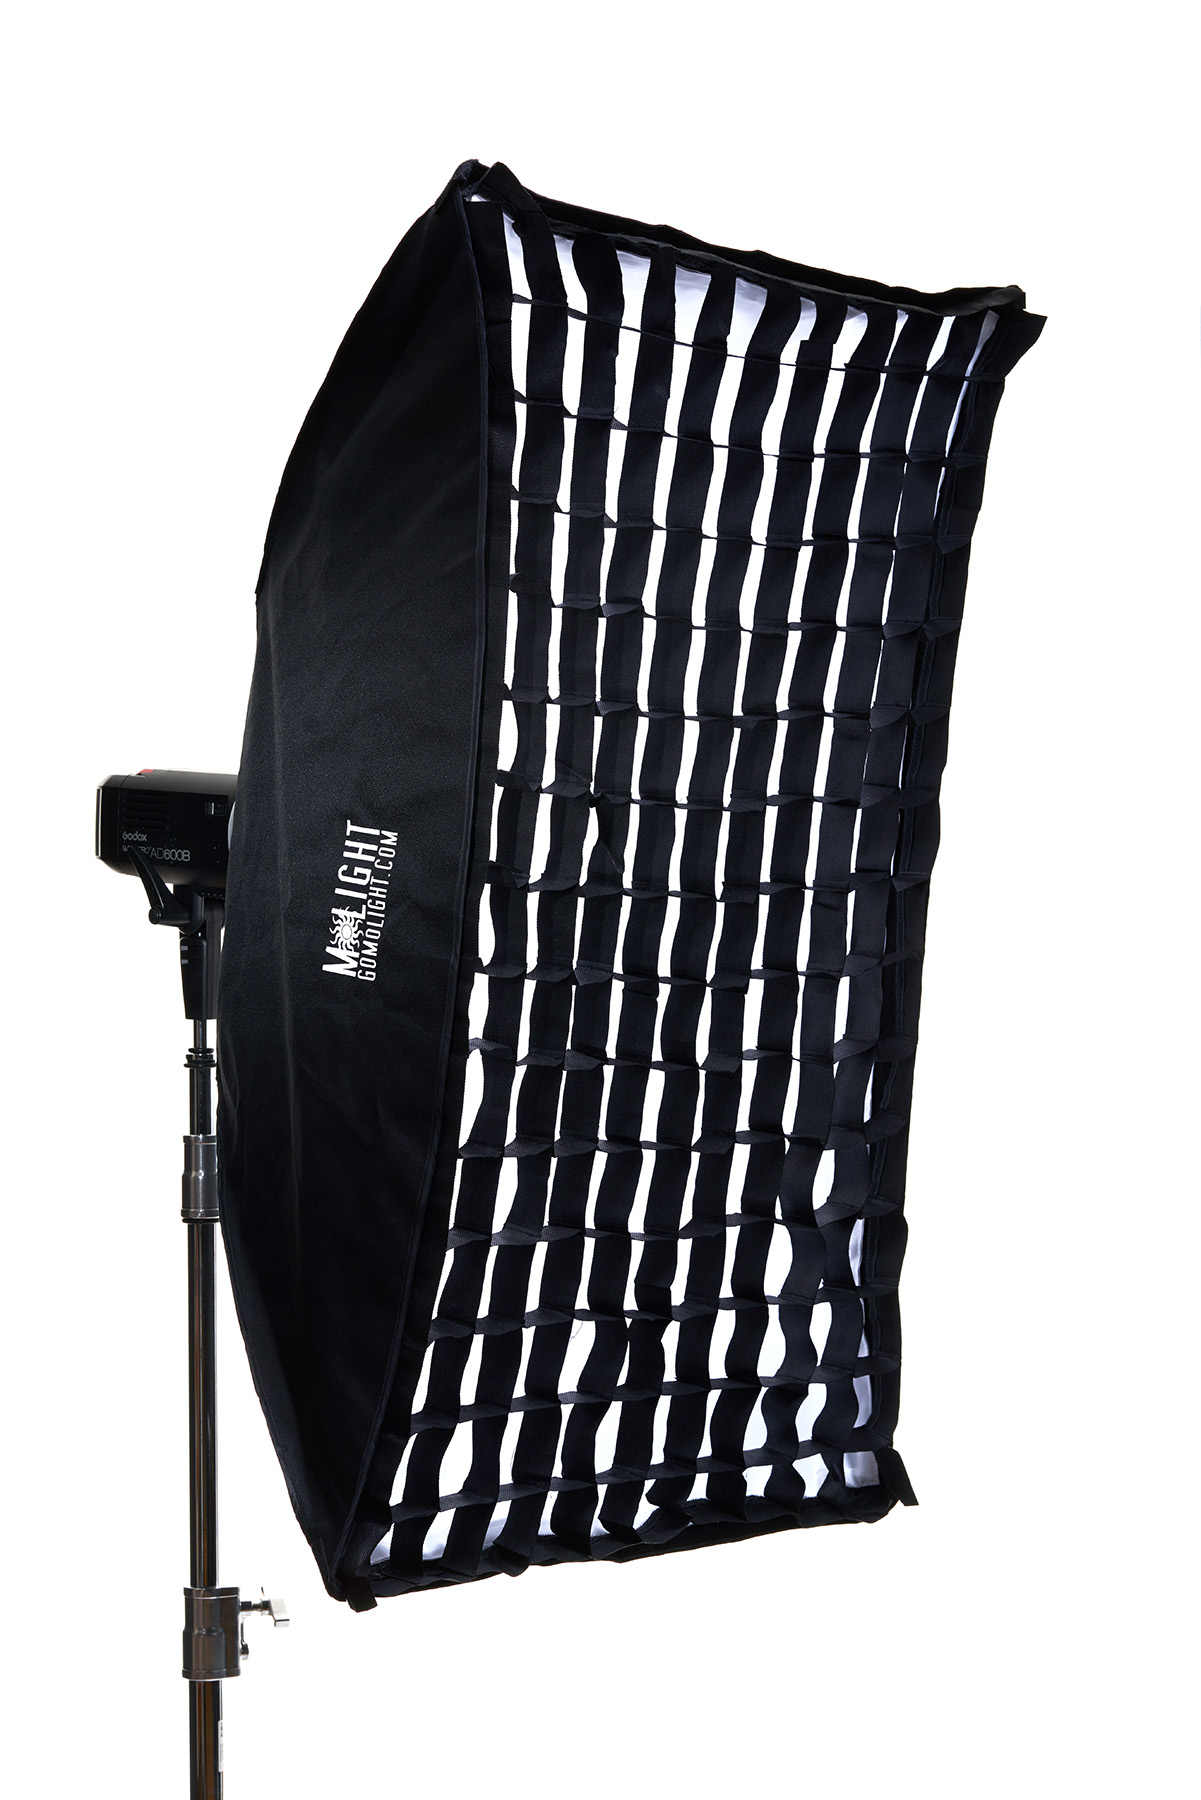 GoMo 32x48 Rectangular Softbox